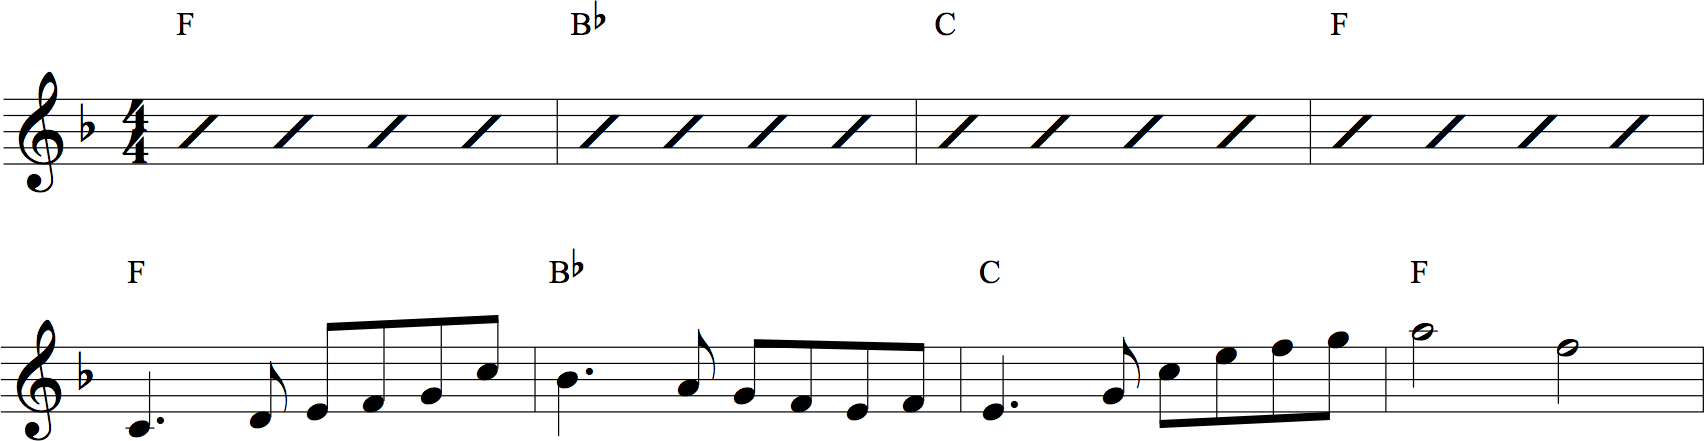 How To Write A Melody Over Chords Hub Guitar